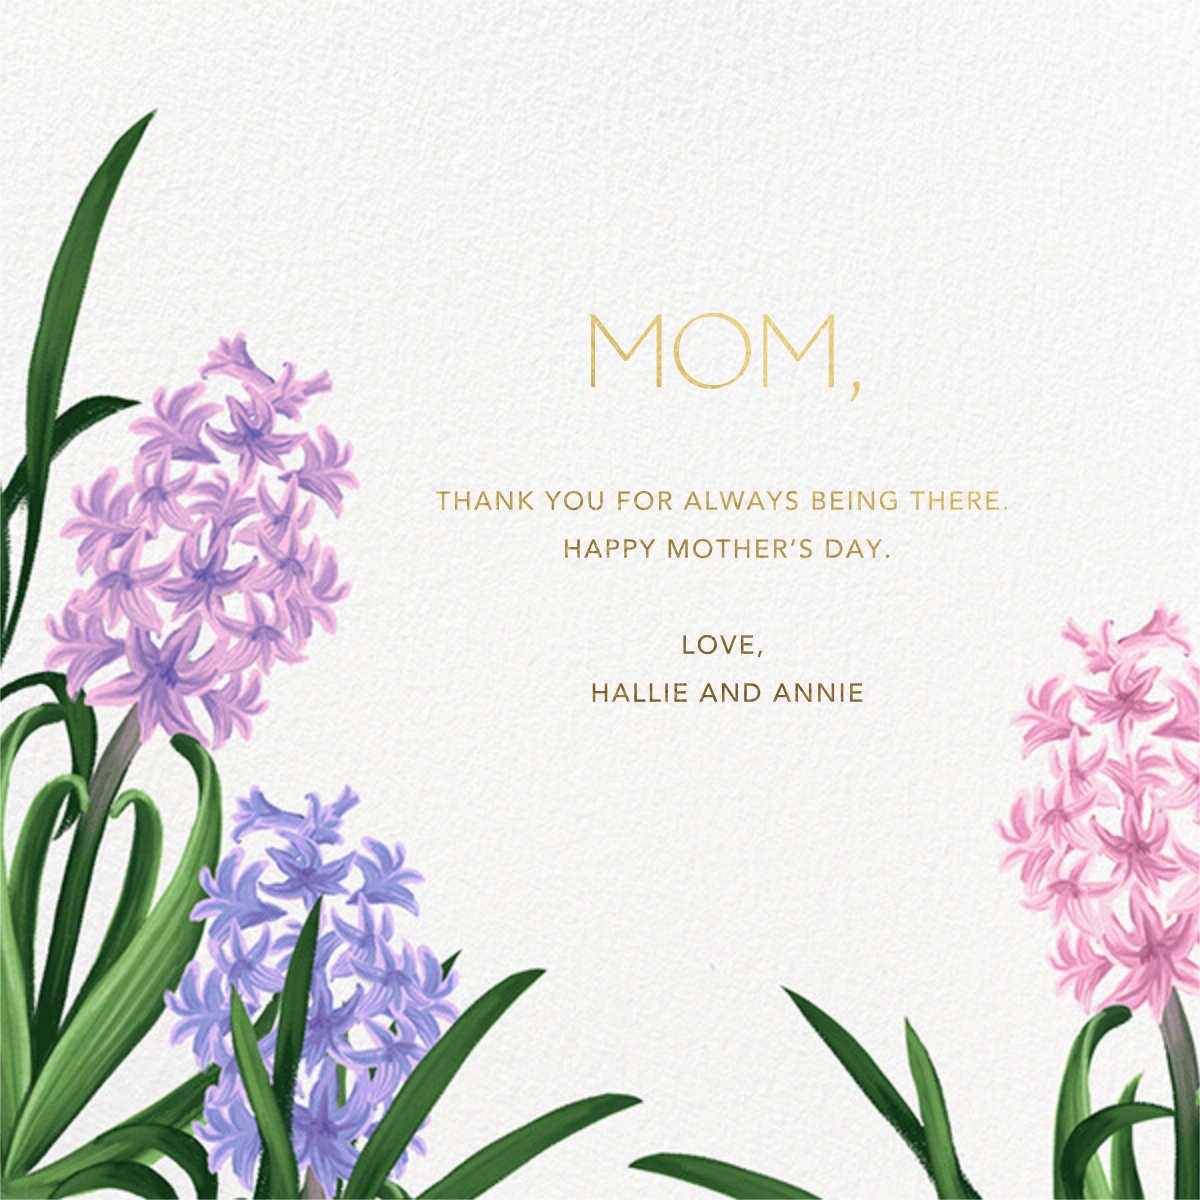 Hyacinth Trio - Paperless Post - Mother's Day